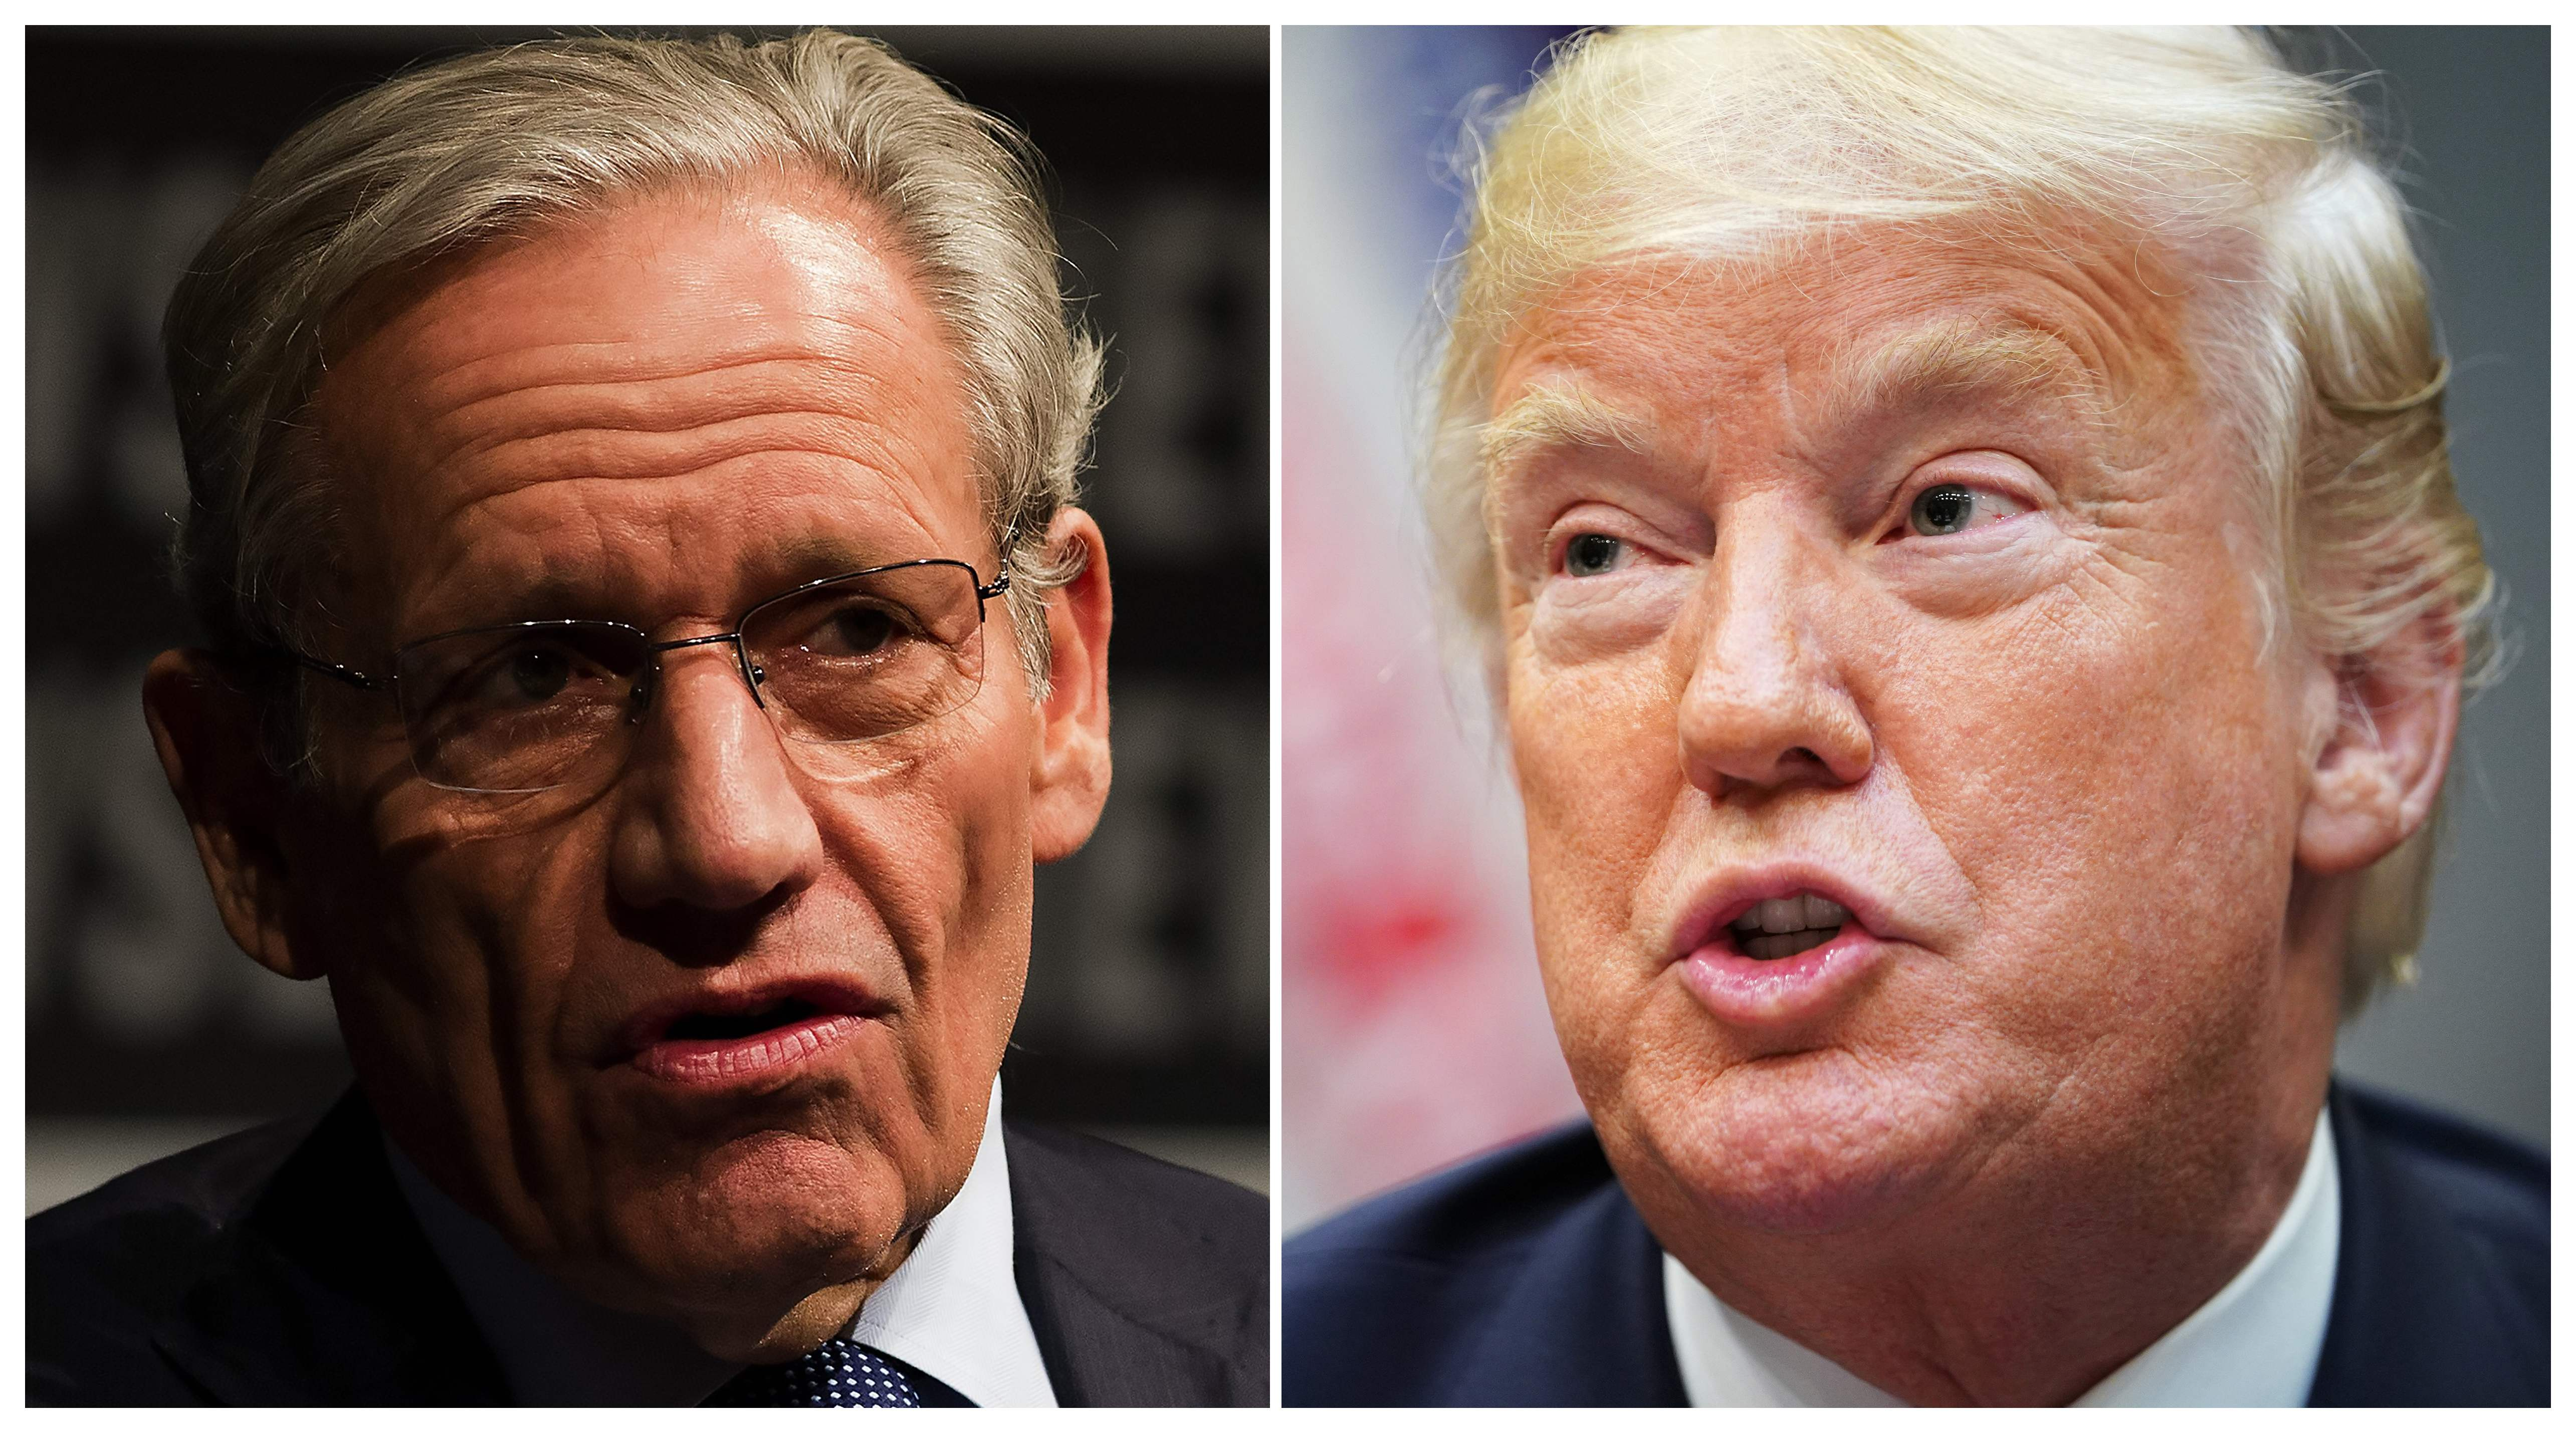 Donald Trump maintains attacks on Bob Woodward, calls for changes in libel laws